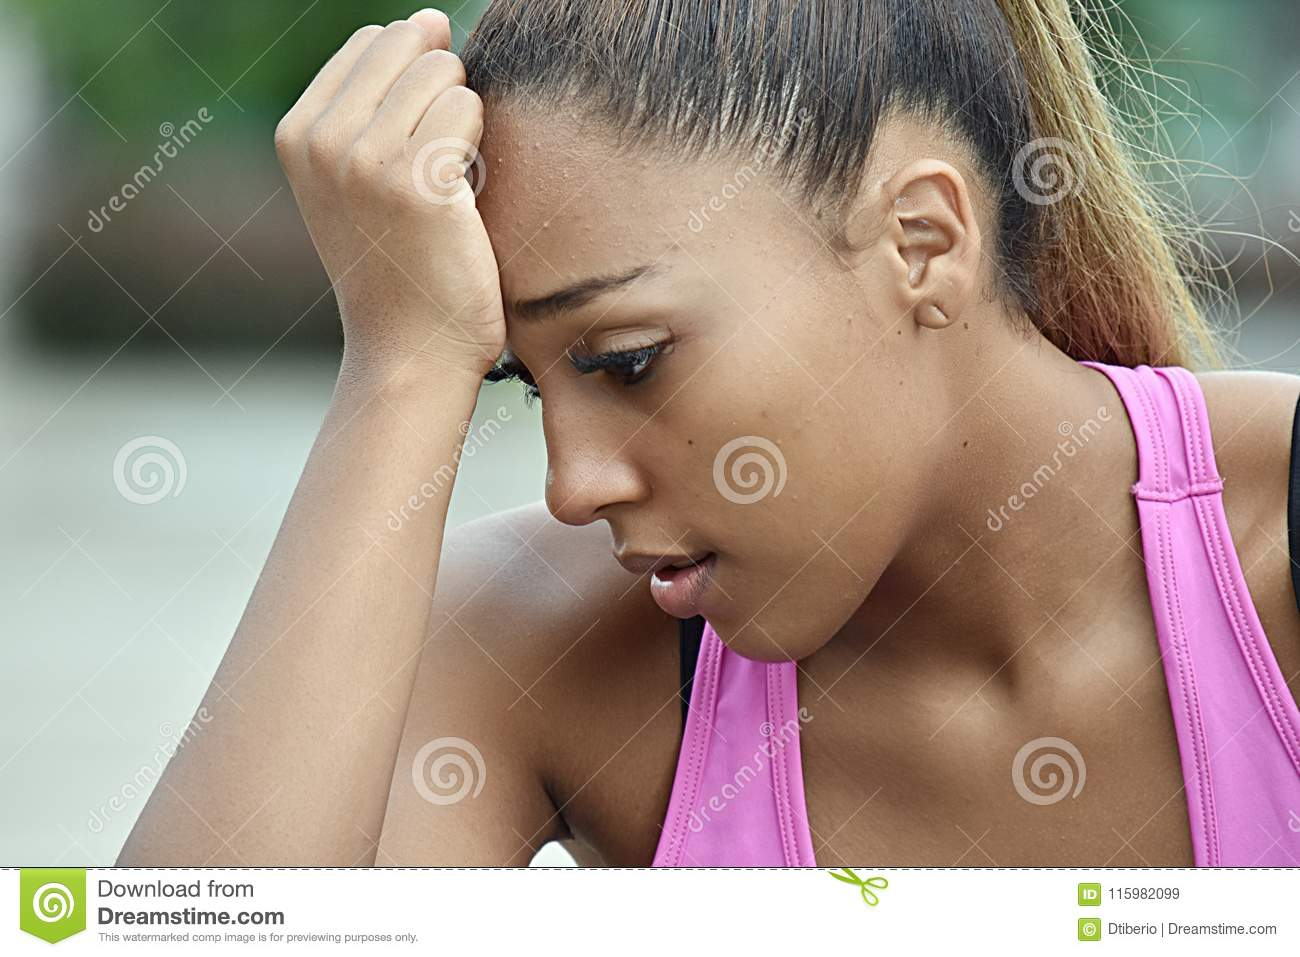 Diverse Teenager Female And Sadness Stock Image - Image of ...